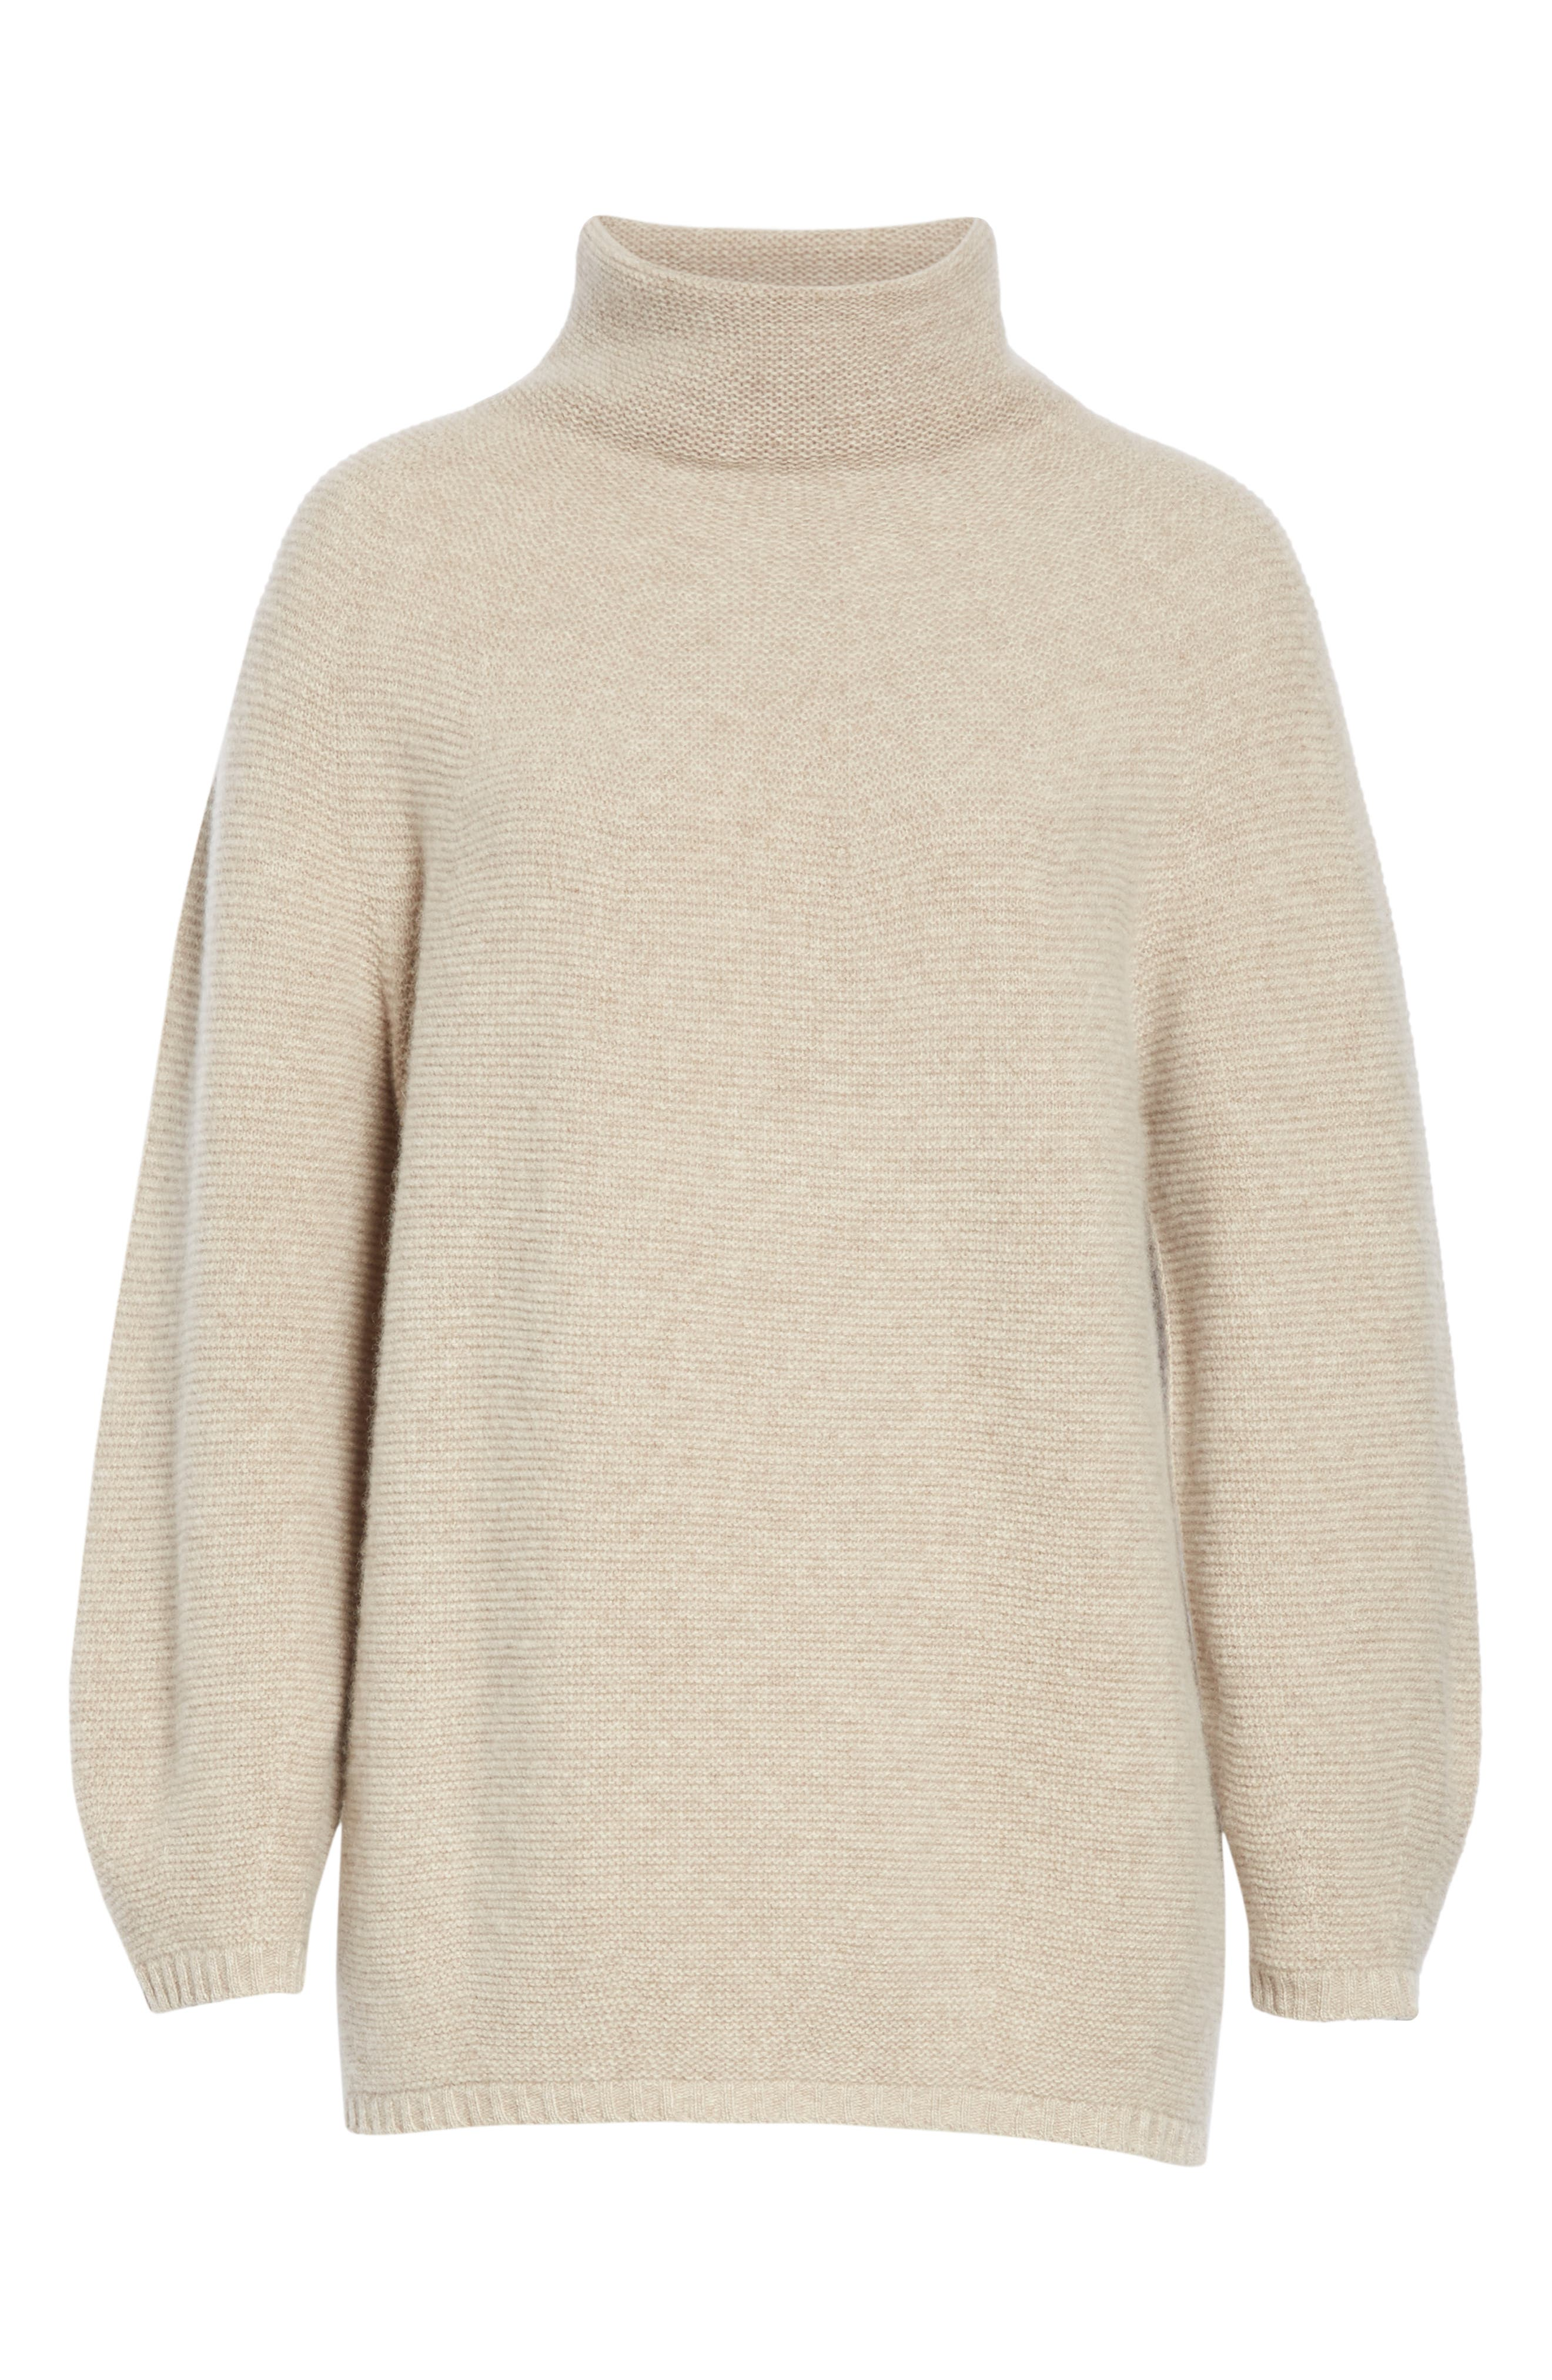 MAX MARA,                             Etrusco Wool & Cashmere Turtleneck Sweater,                             Alternate thumbnail 6, color,                             050